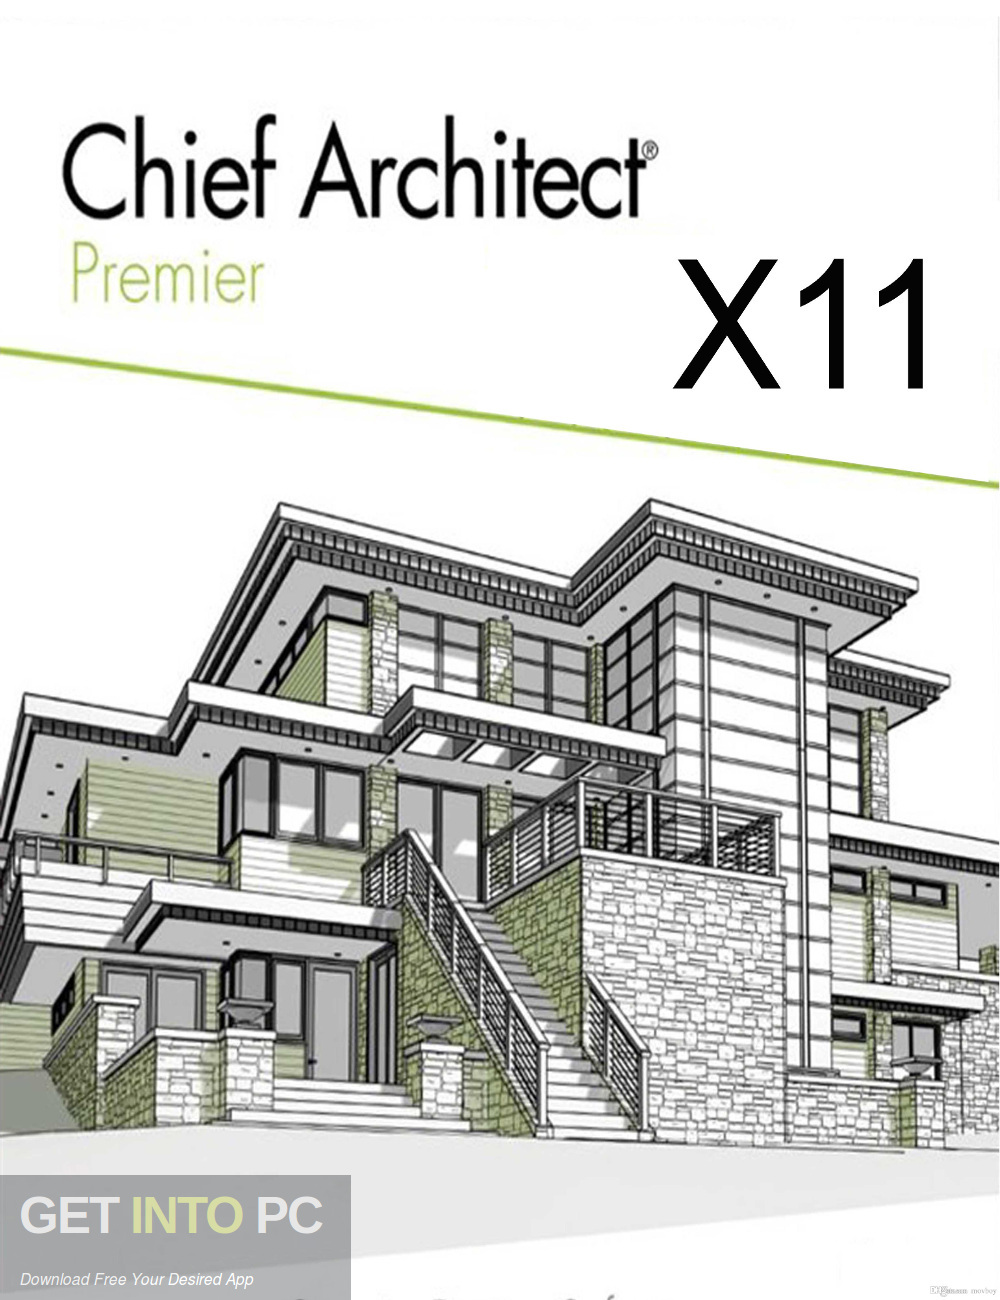 Chief Architect Premier X11 Free Download-GetintoPC.com